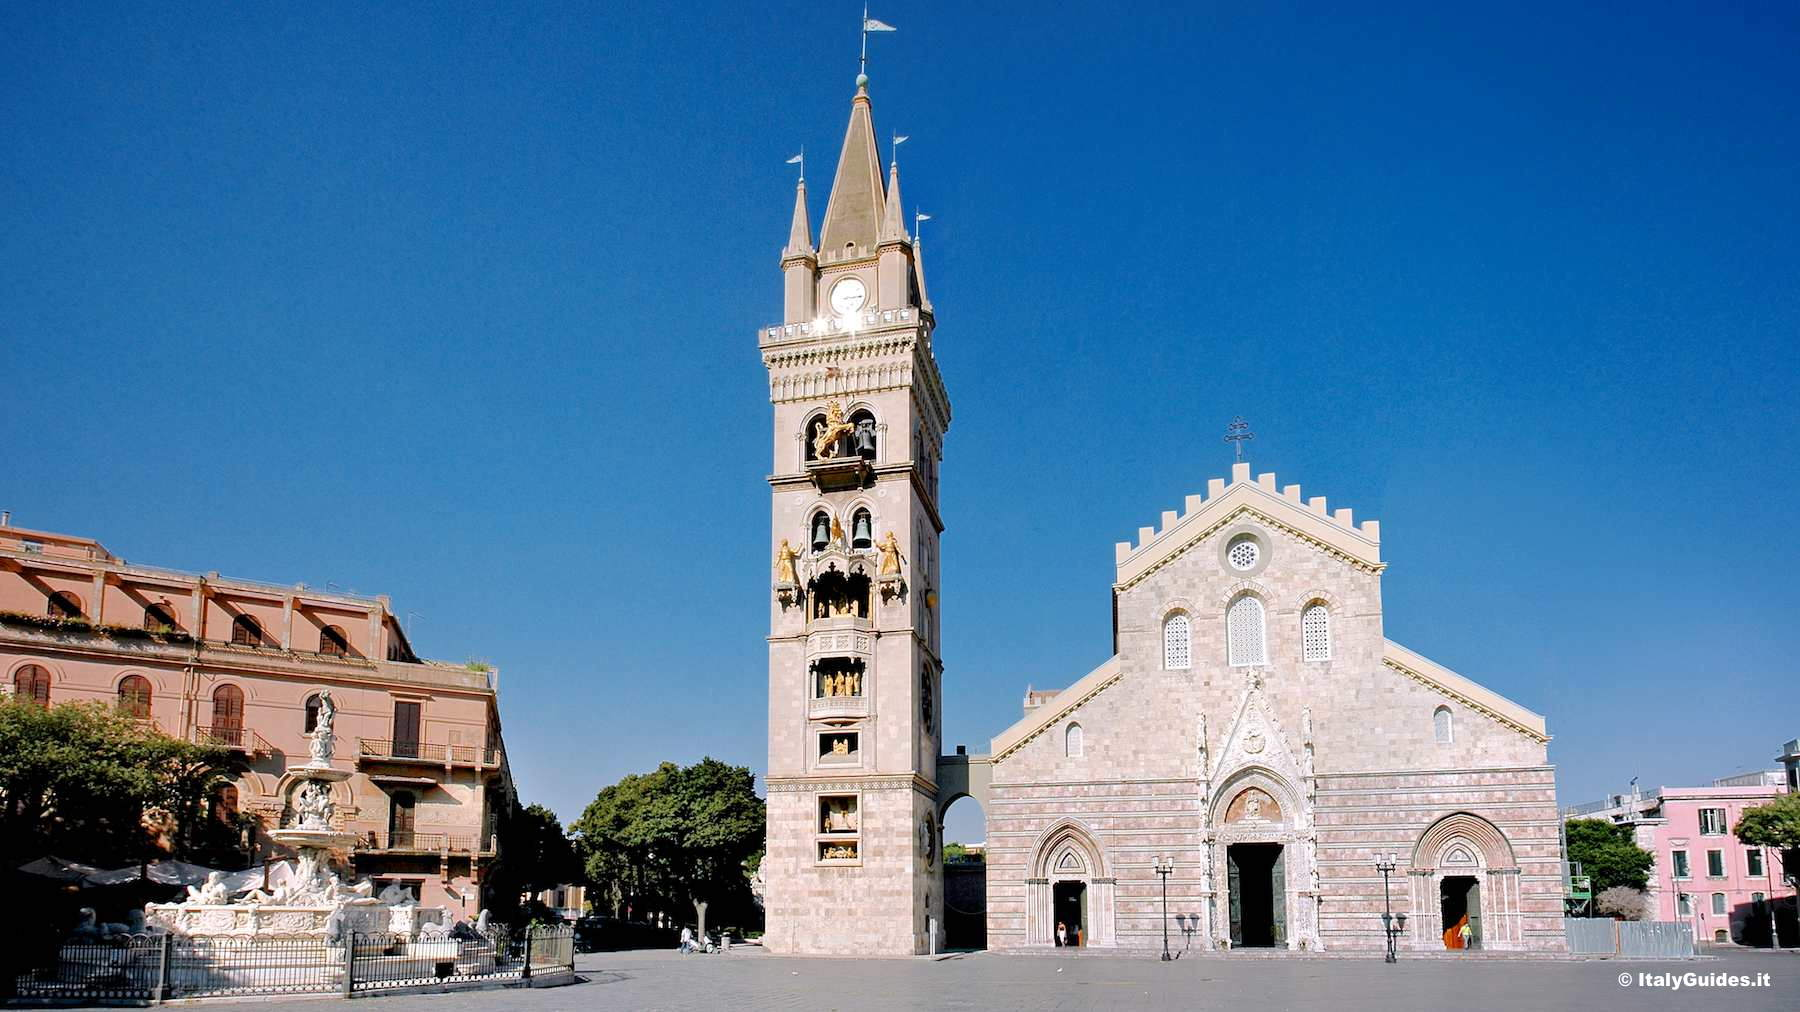 Pictures of messina photo gallery and movies of messina sicily